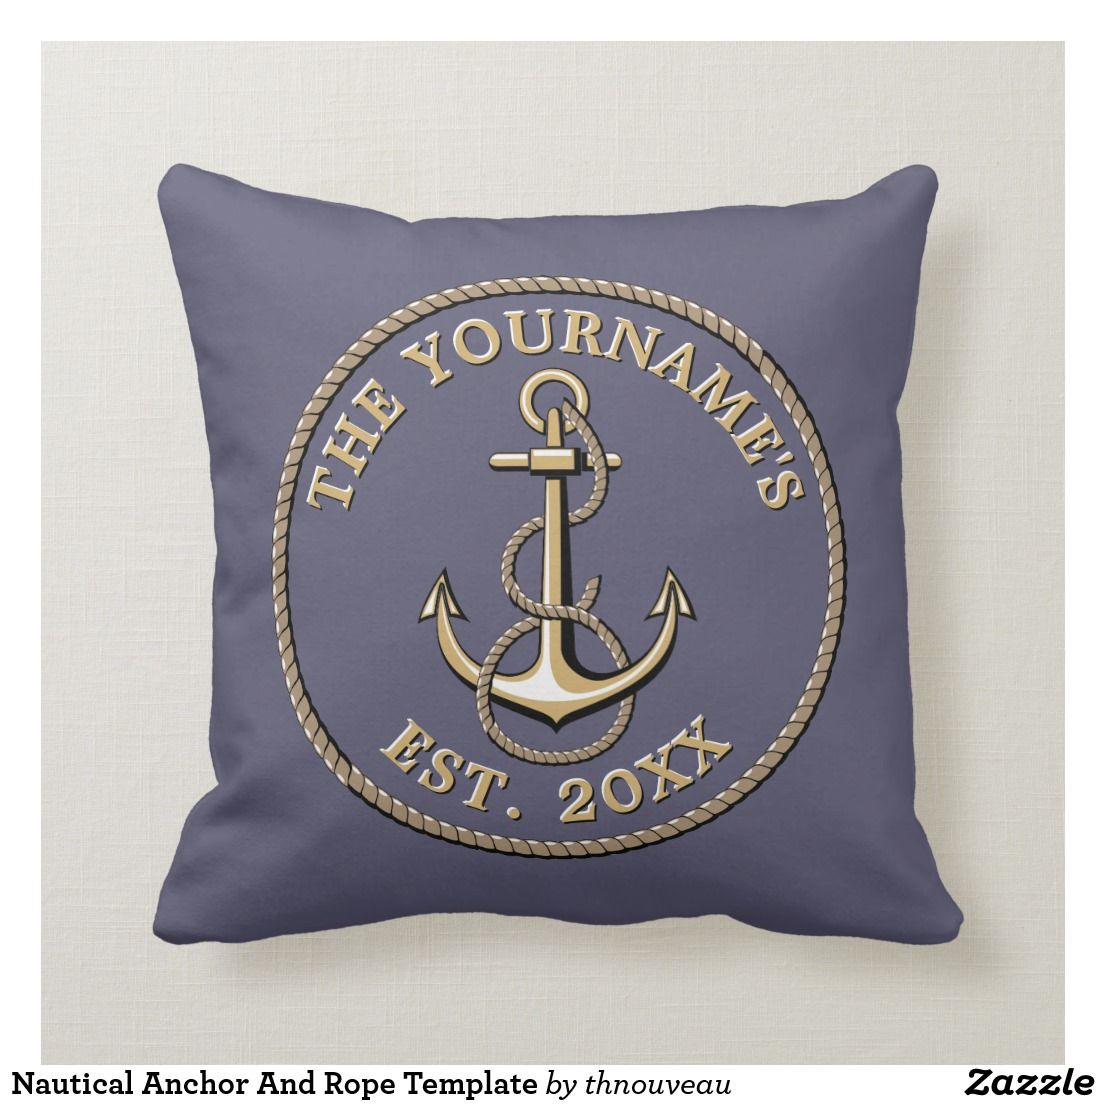 Nautical Anchor And Rope Template Throw Pillow Zazzle